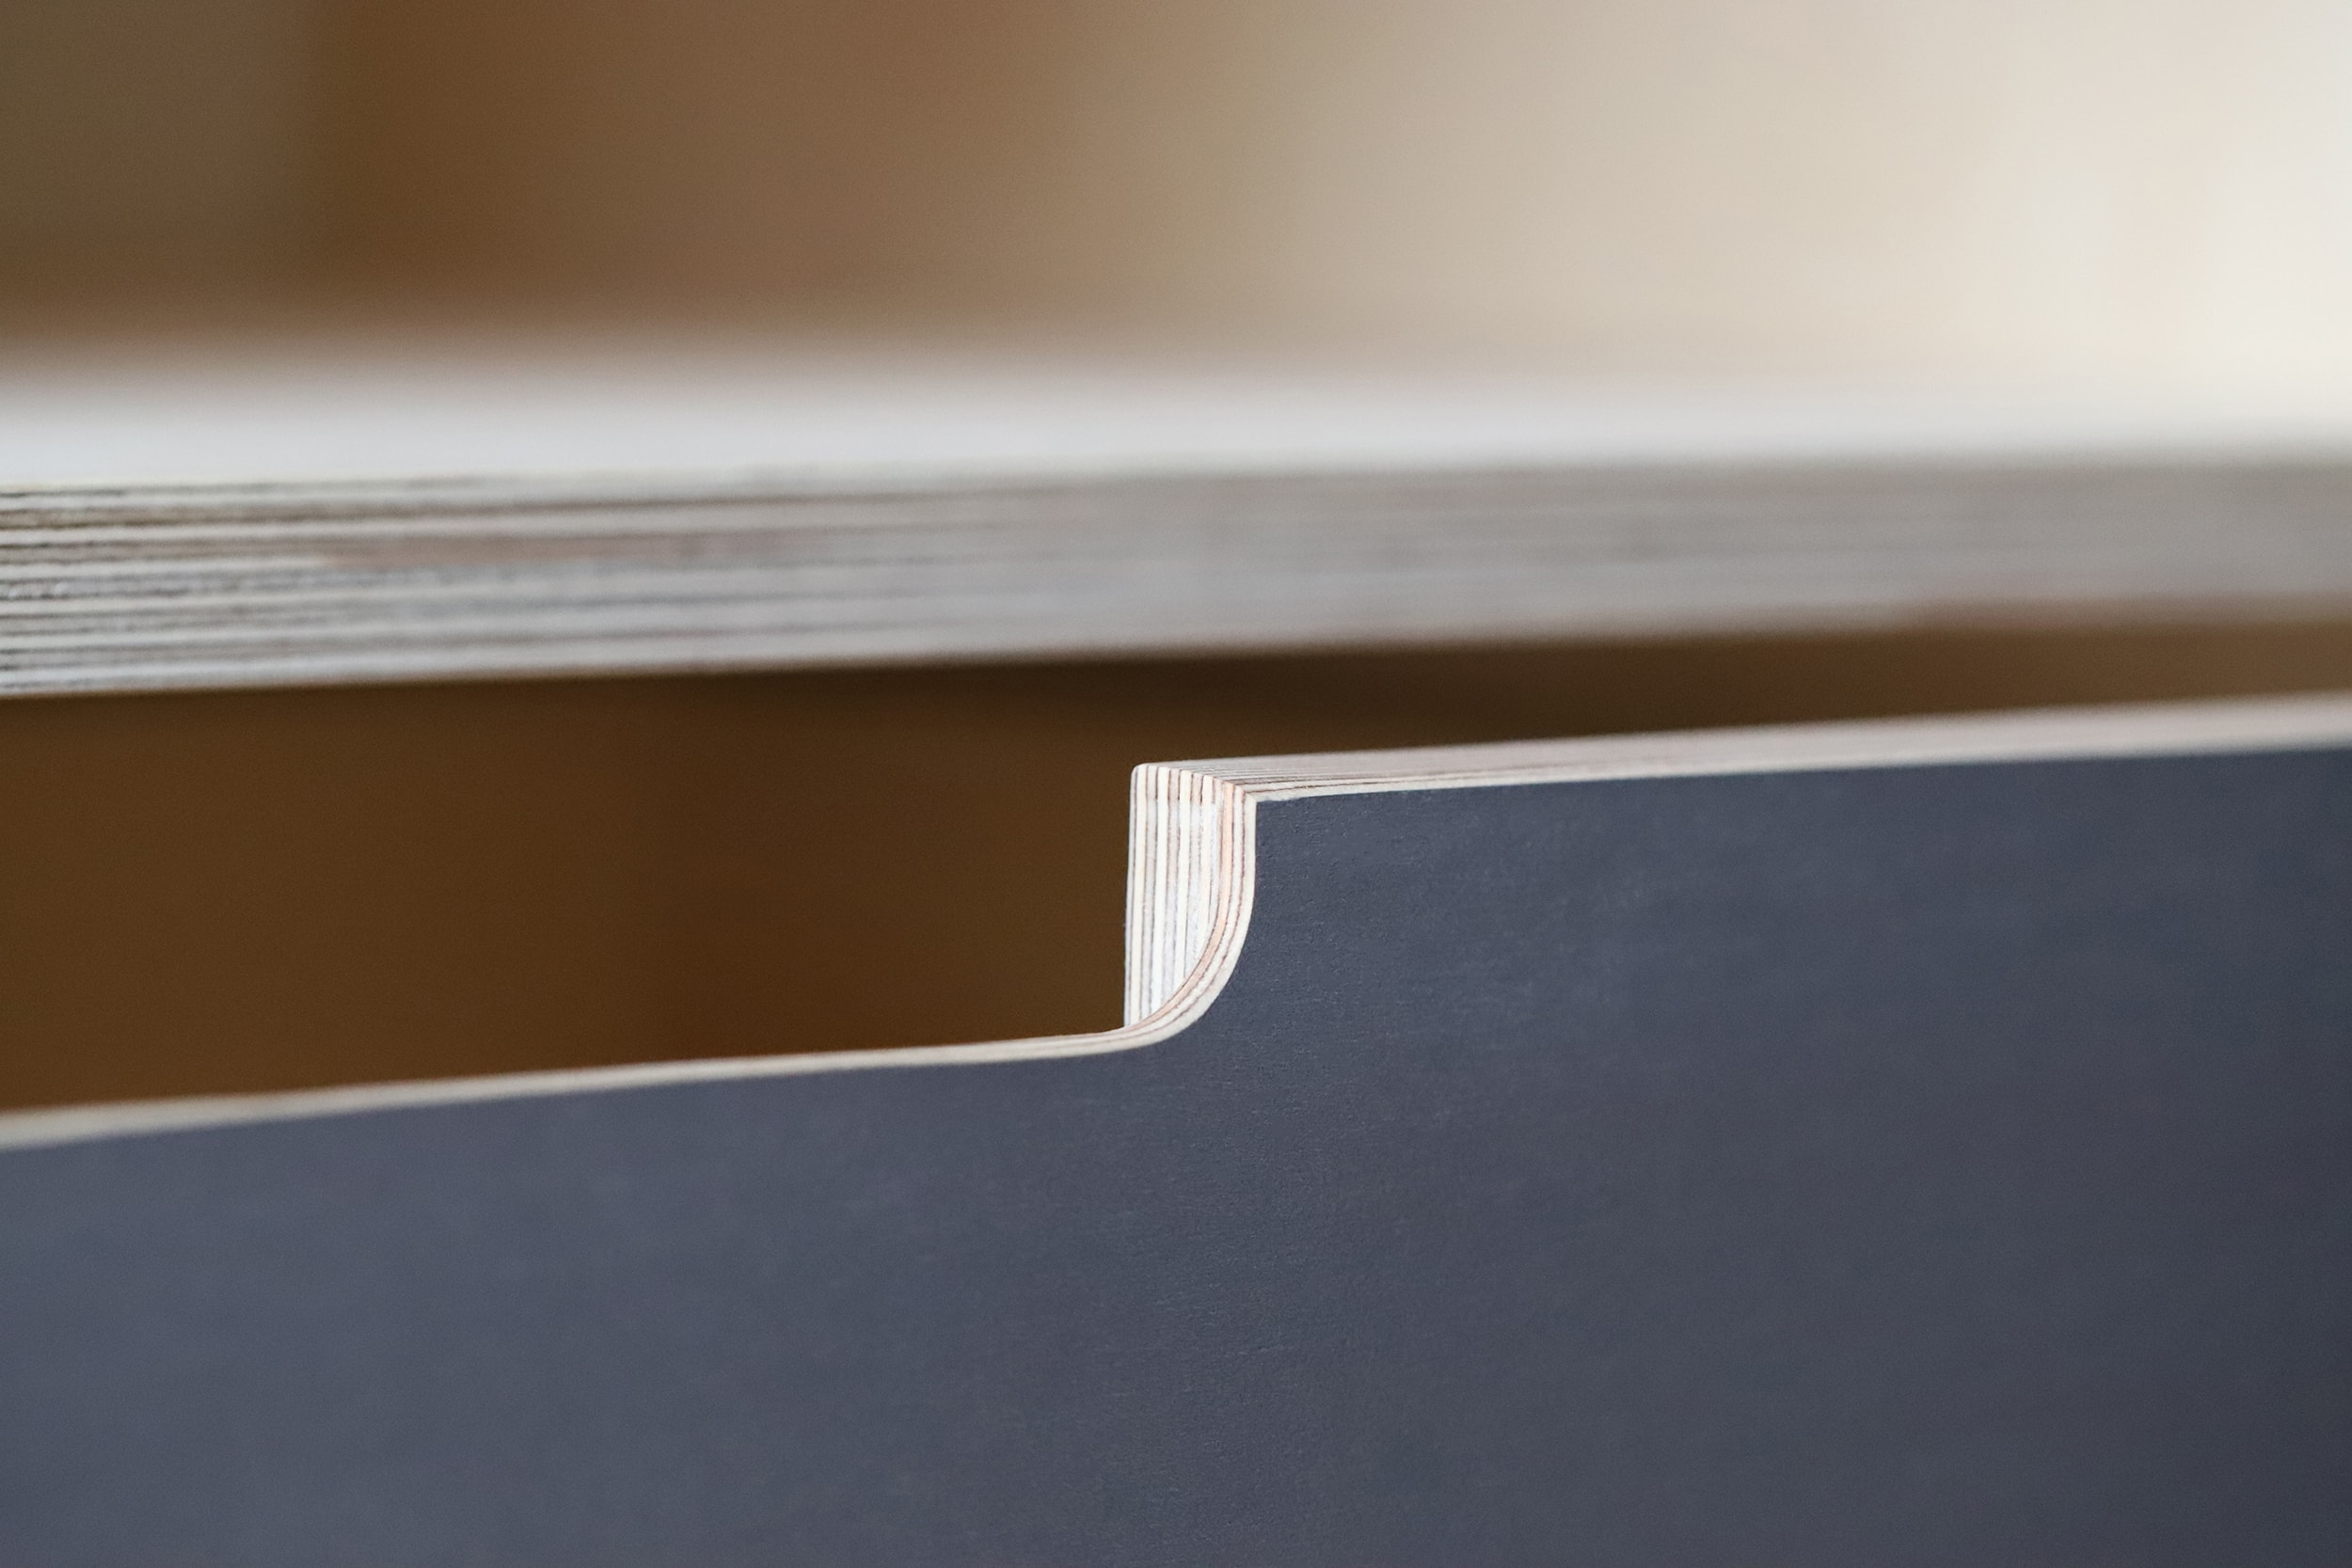 The smooth handles on each drawer.